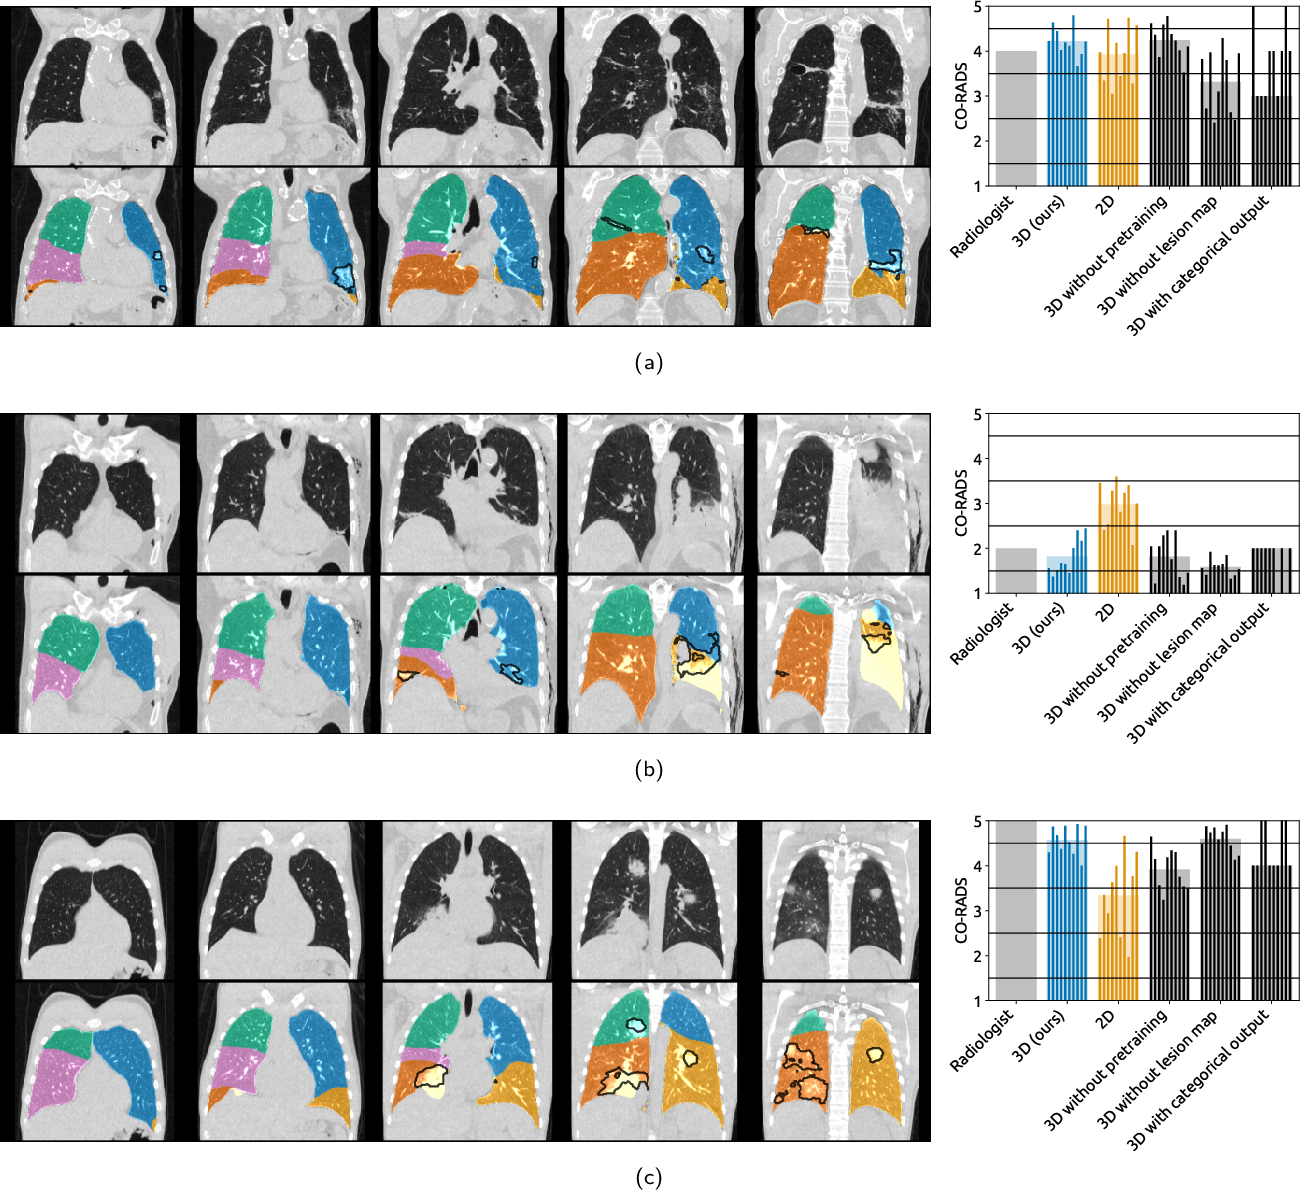 Figure 3 for Improving Automated COVID-19 Grading with Convolutional Neural Networks in Computed Tomography Scans: An Ablation Study